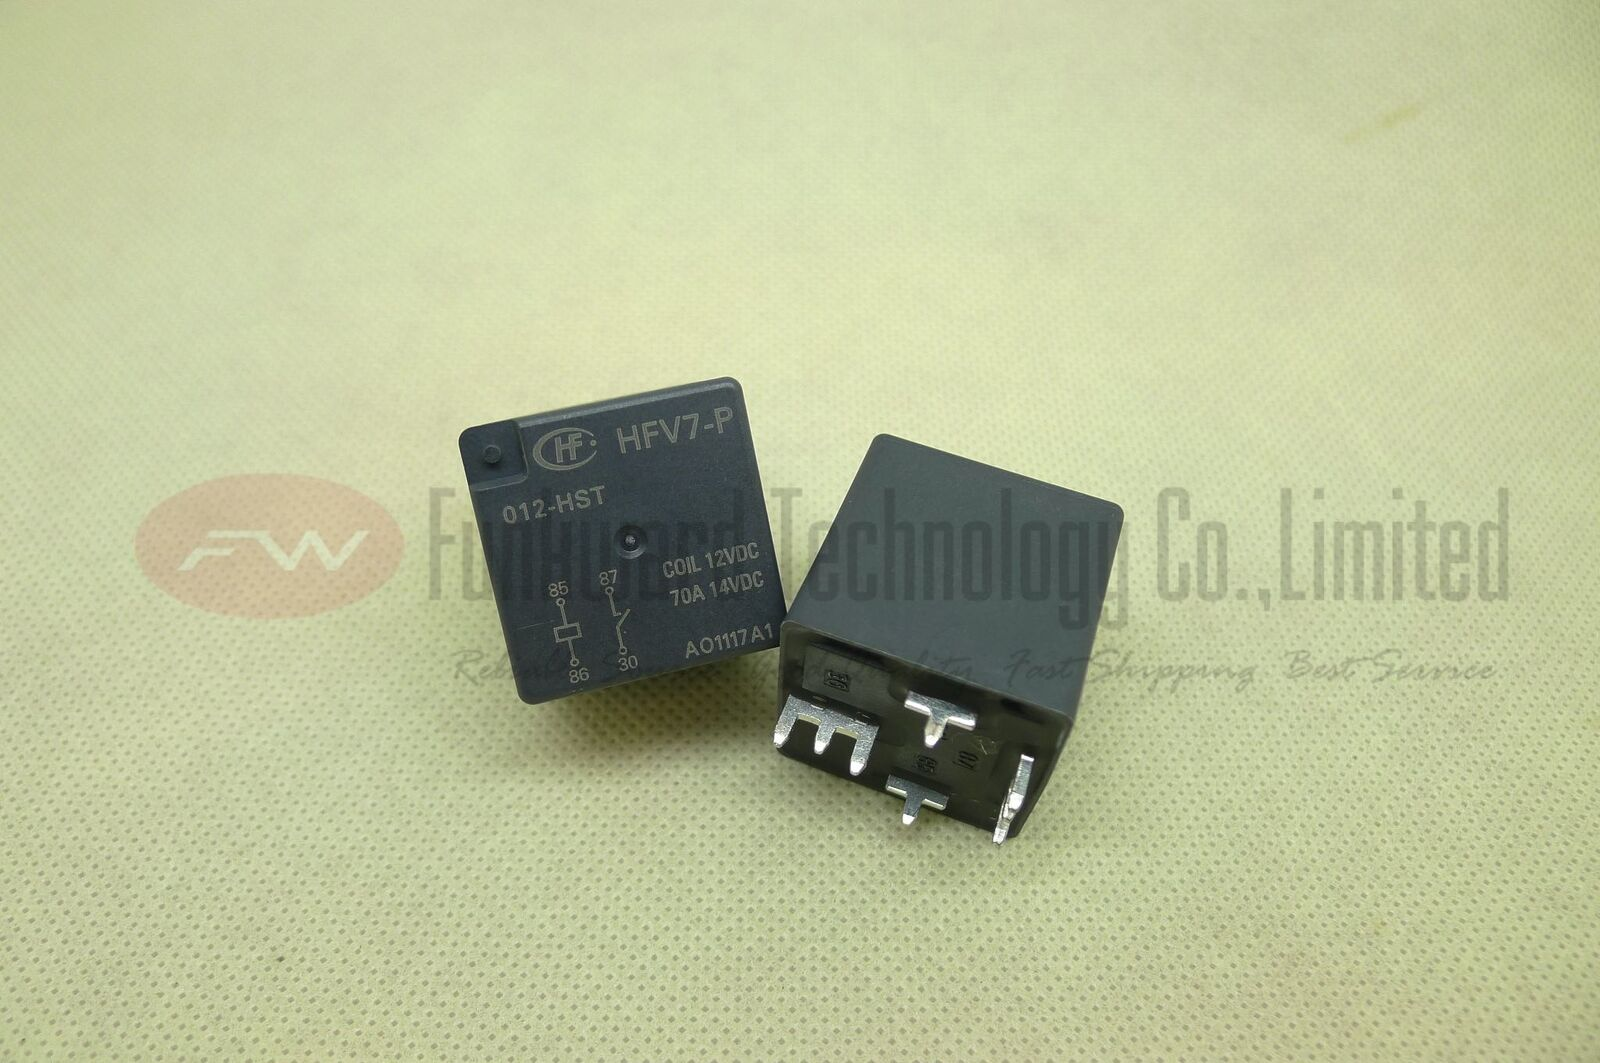 Hfv7 P 012 Ht Terminal Automotive Relay 12vdc 70a X 10pcs Ebay Spst Reed 5vdc Coil Norton Secured Powered By Verisign